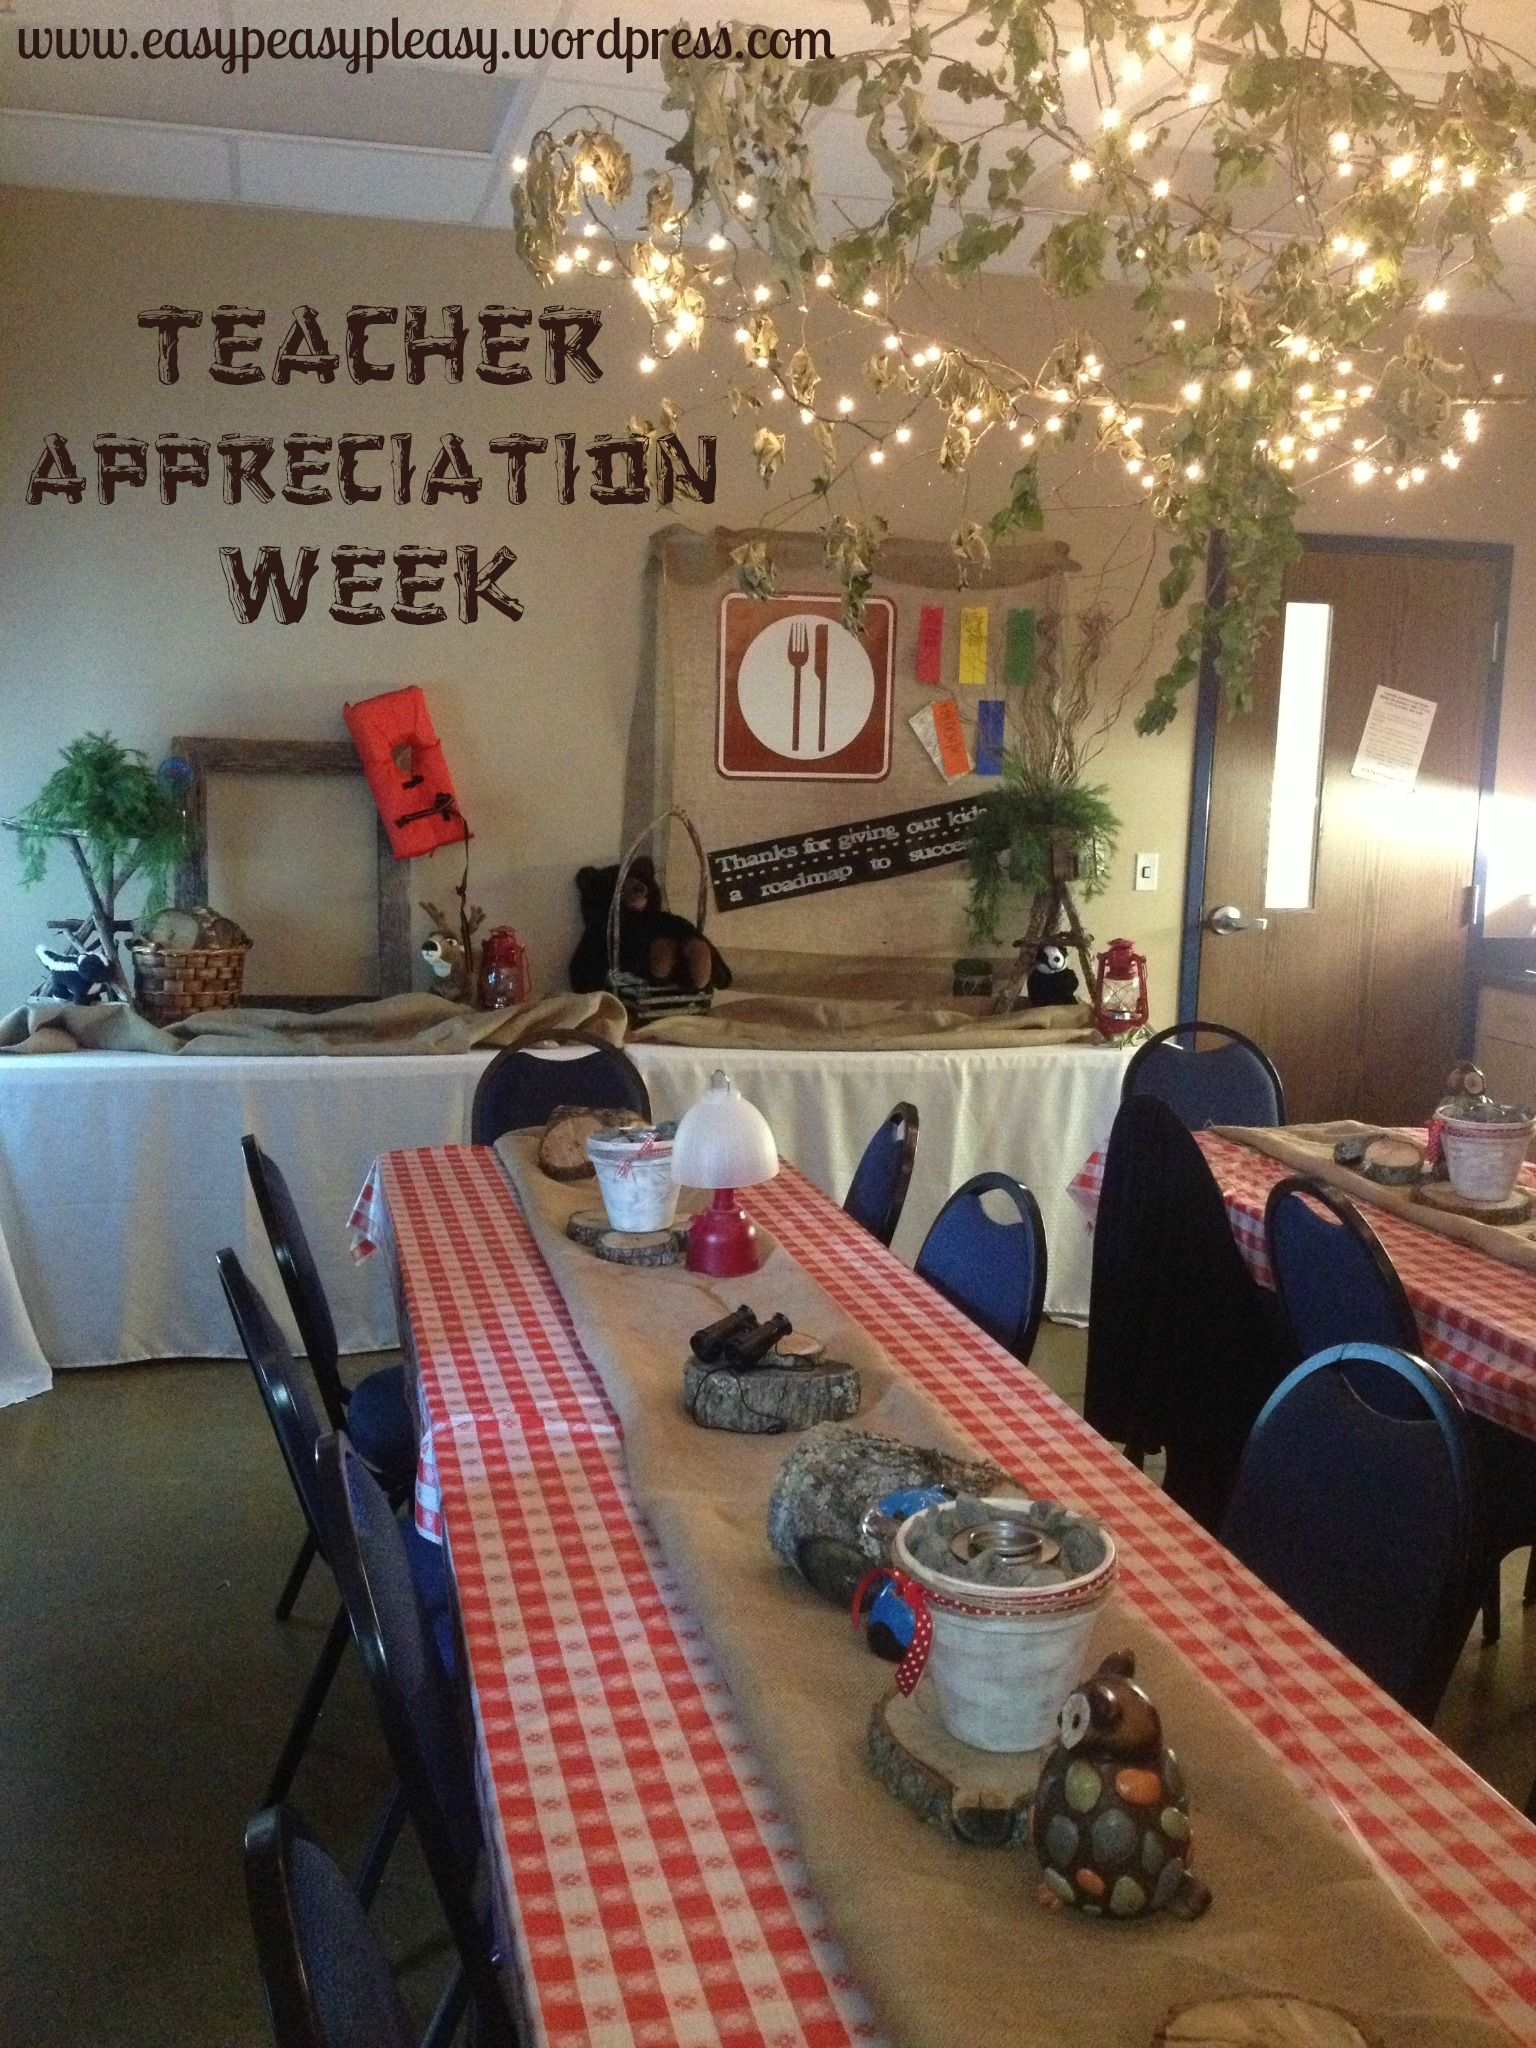 How To Show Teacher Appreciation In A Big Way Camping